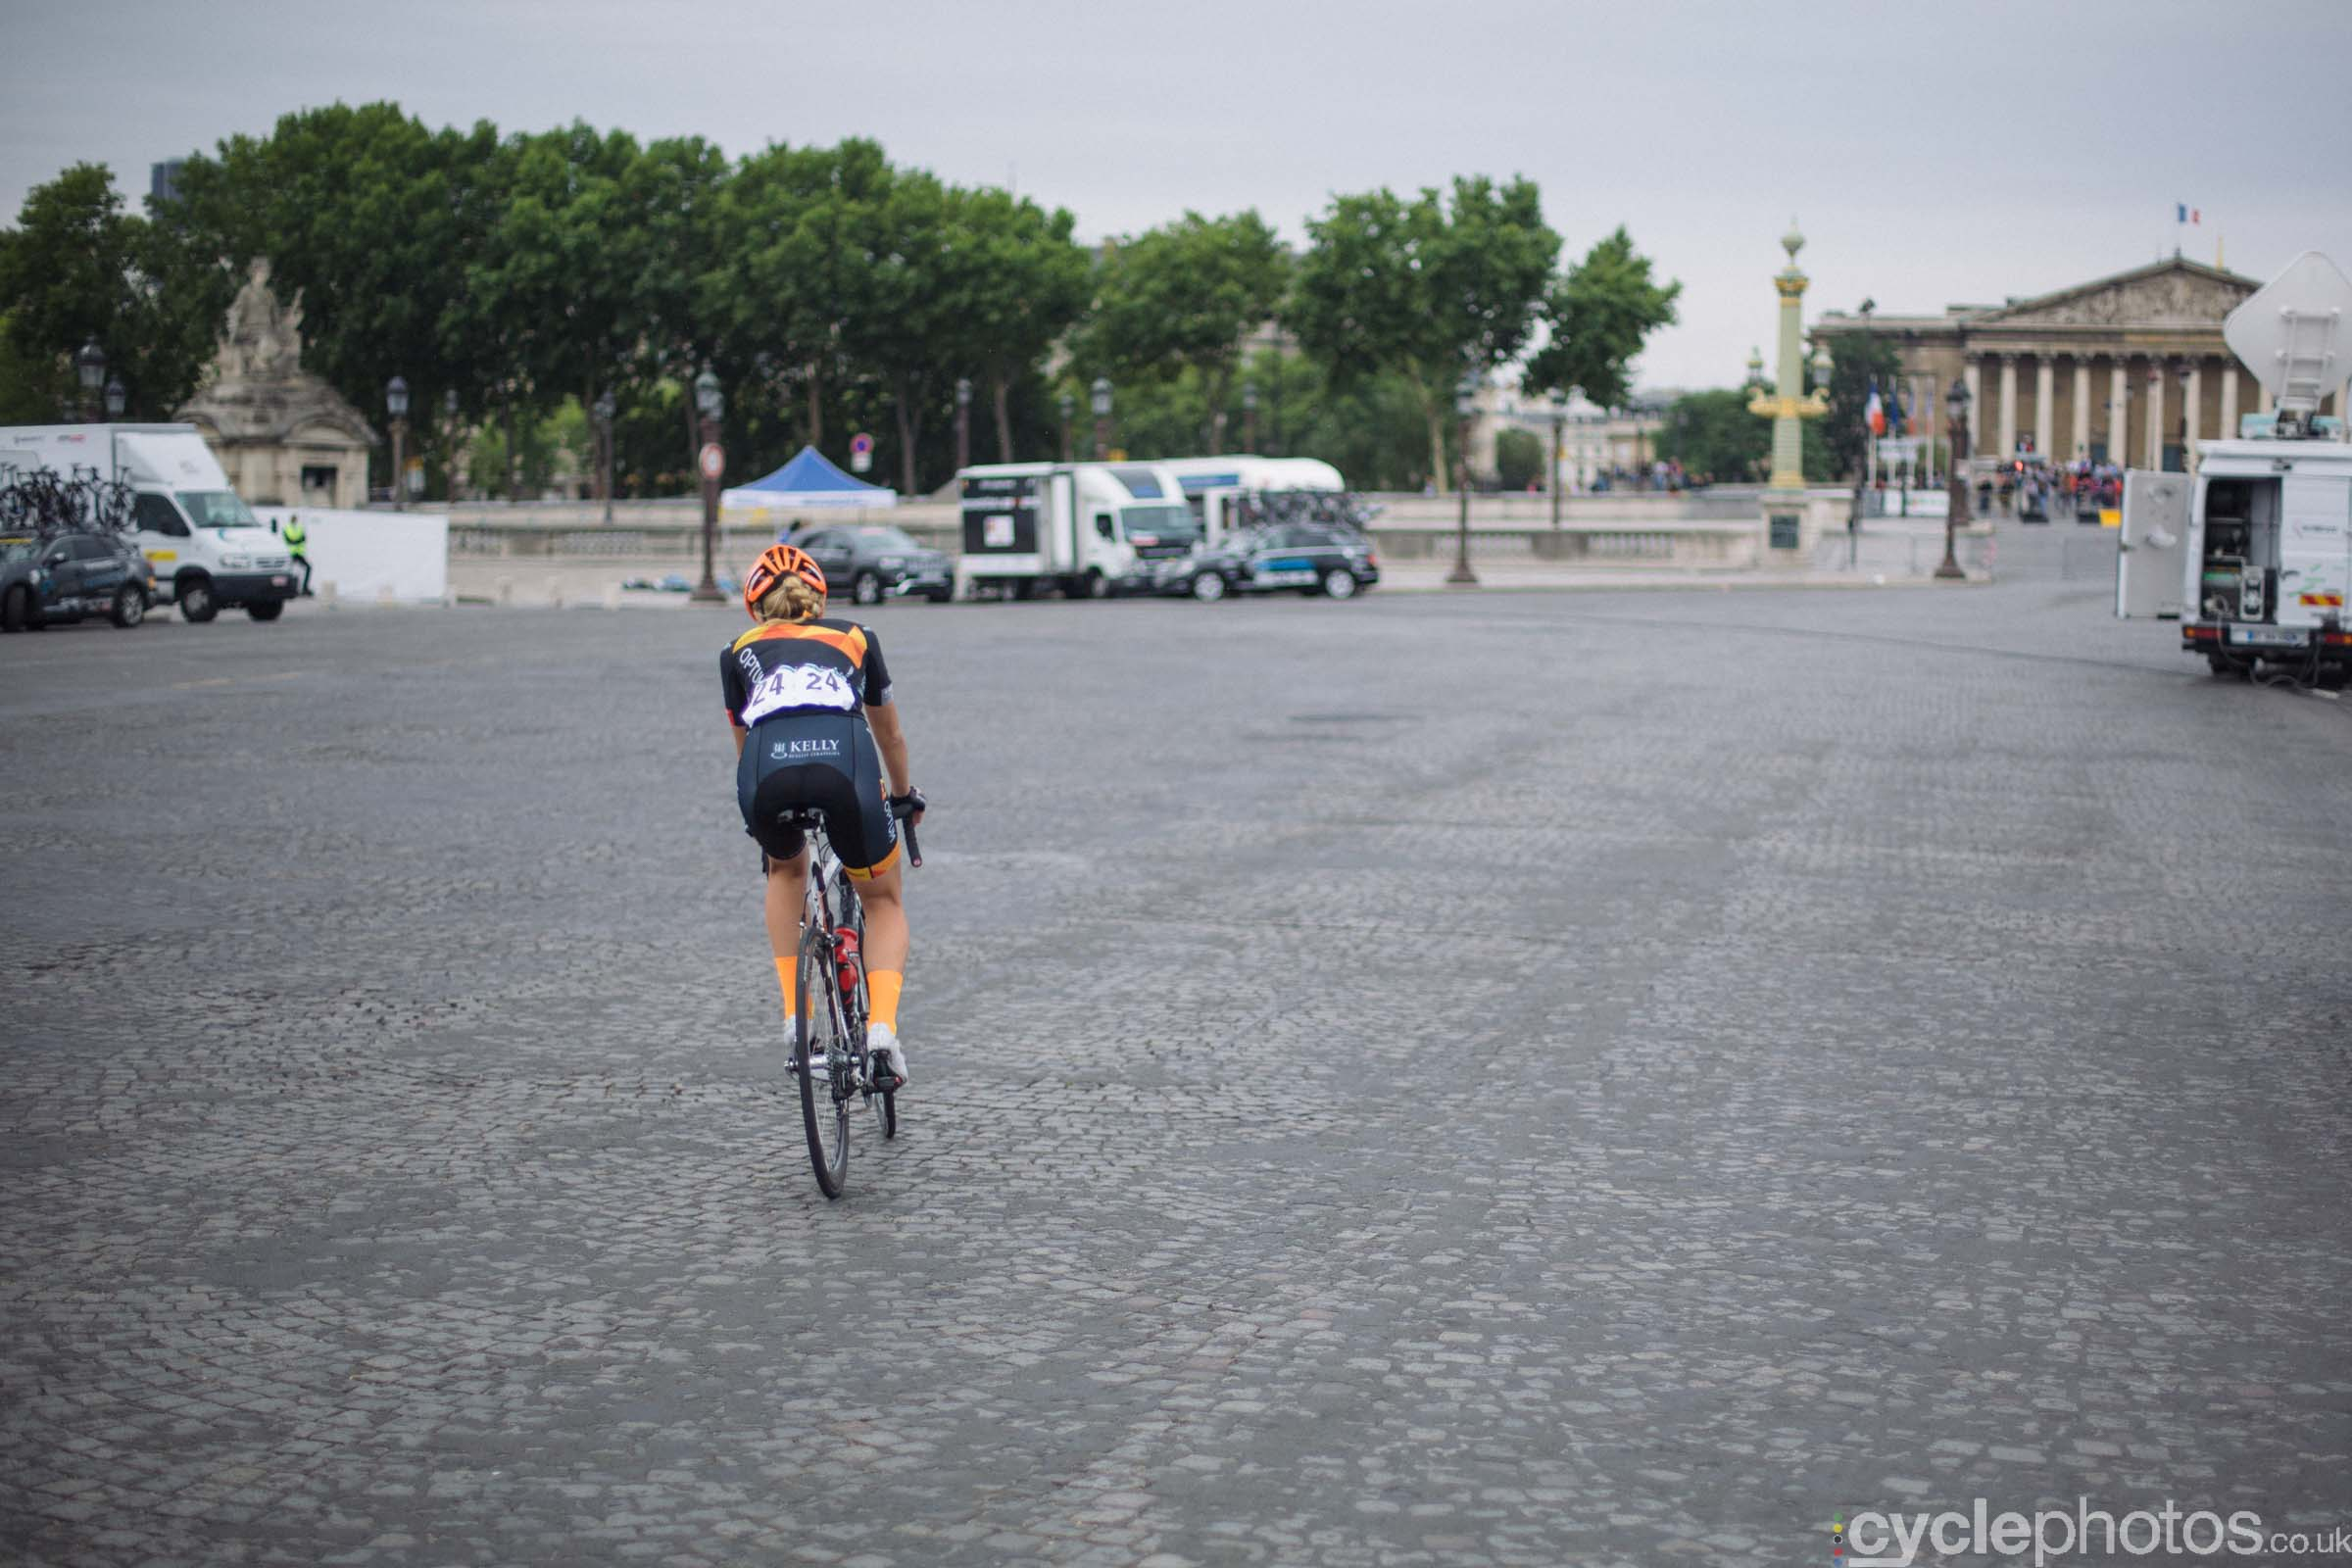 Maura Kinsella before the 2015 edition of the La Course by Le Tour women's road cycling race.